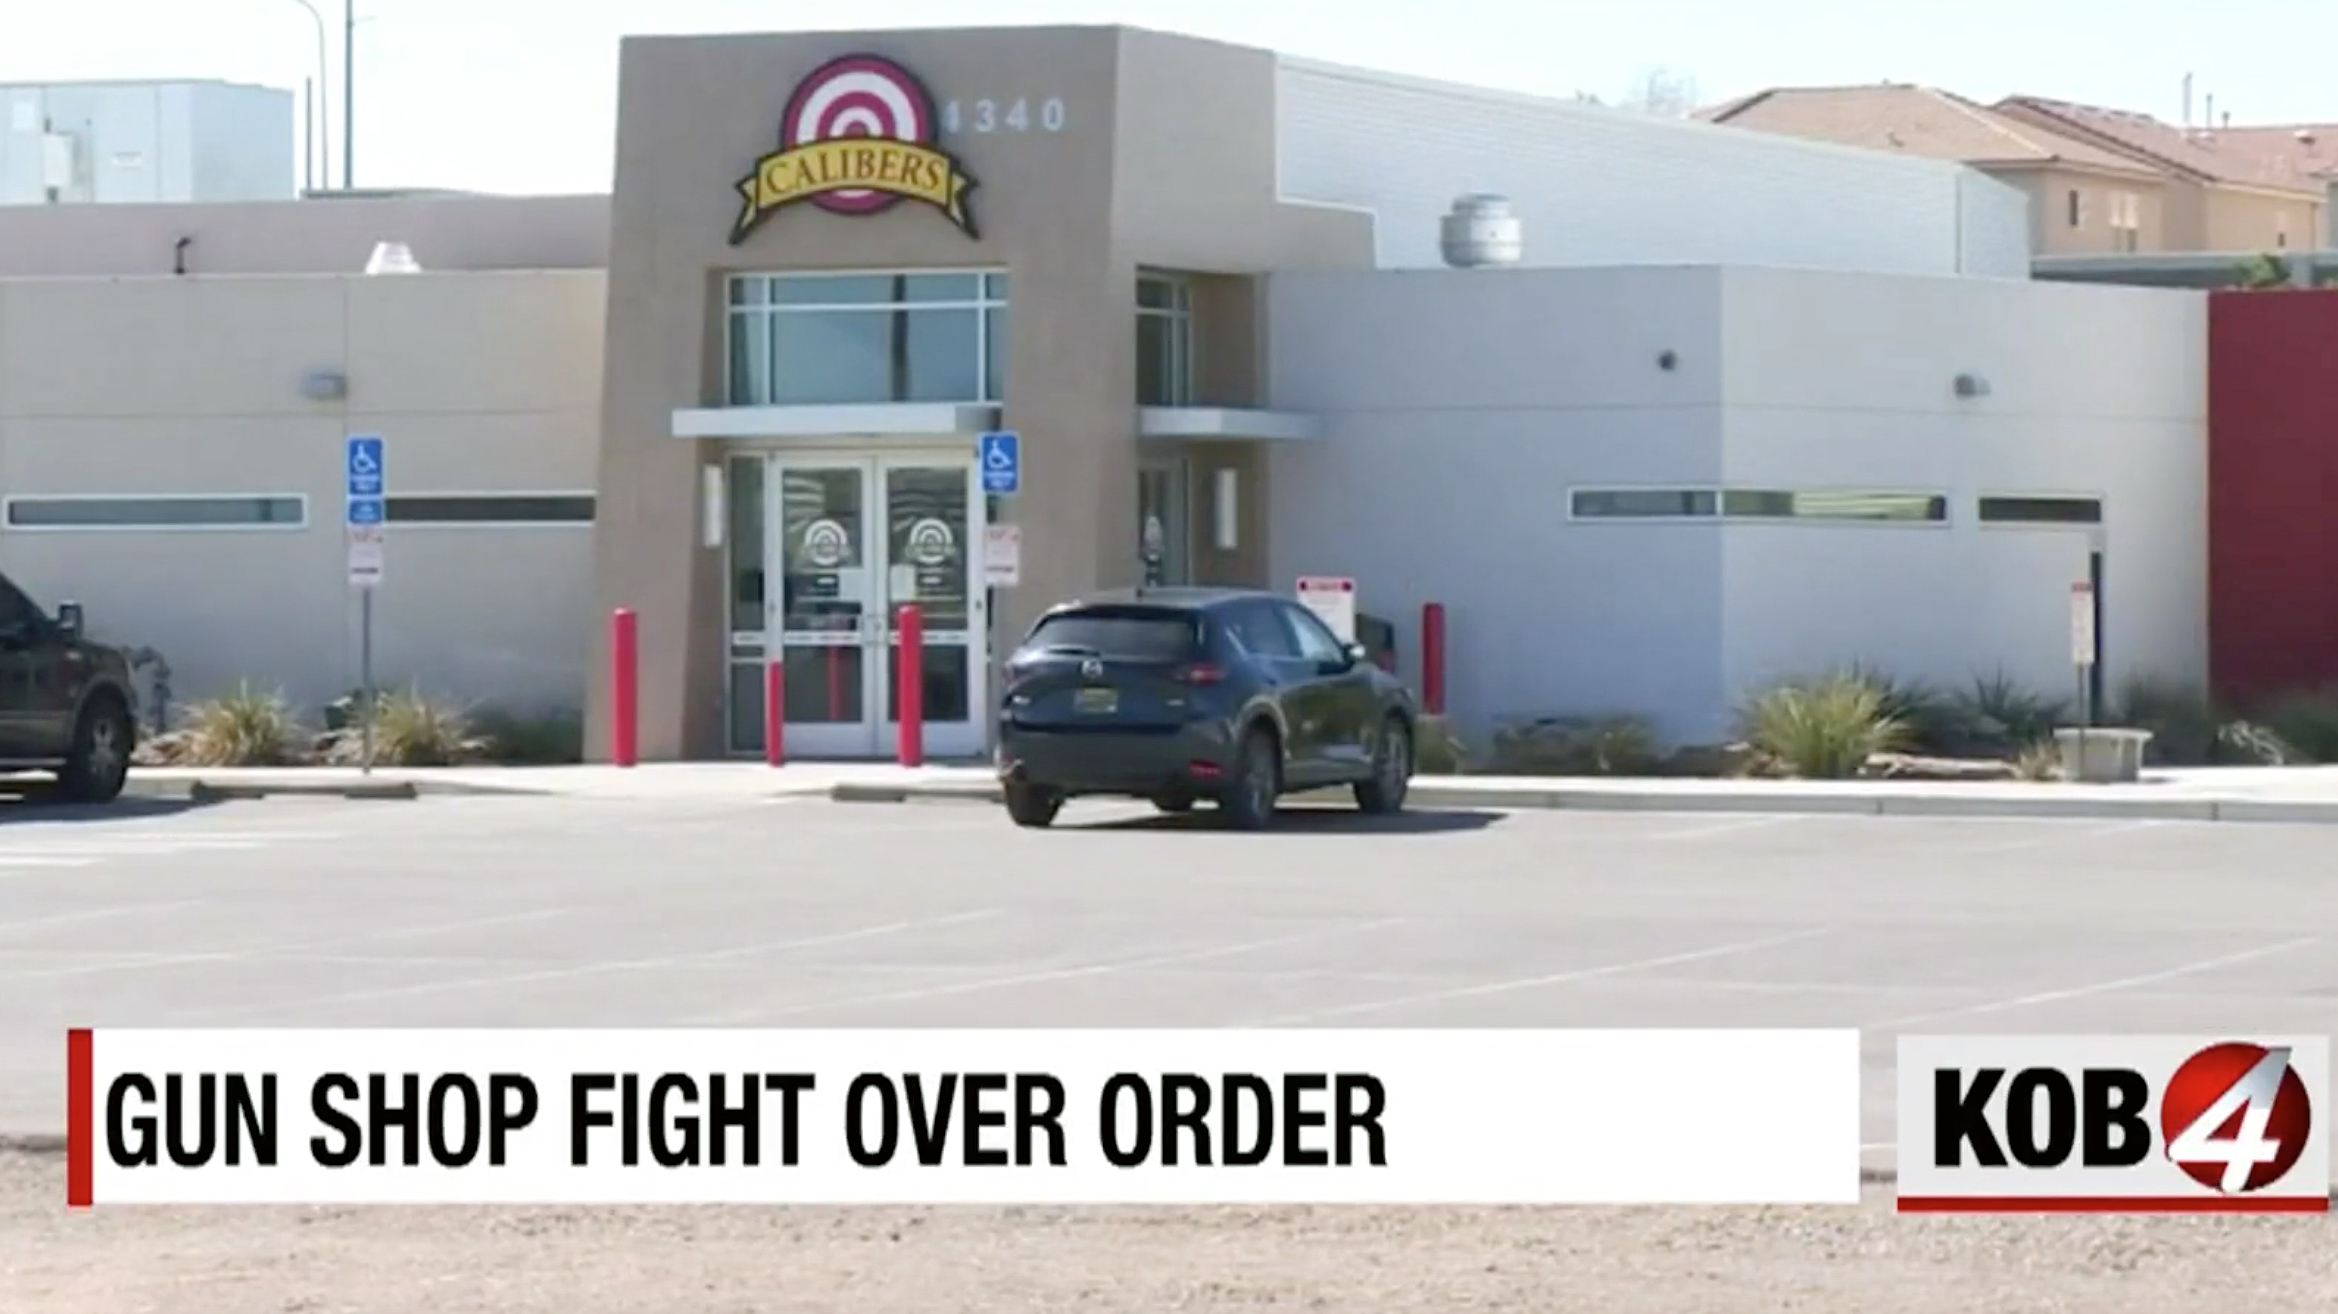 Calibers gun store challenges the New Mexico governor's order to close.